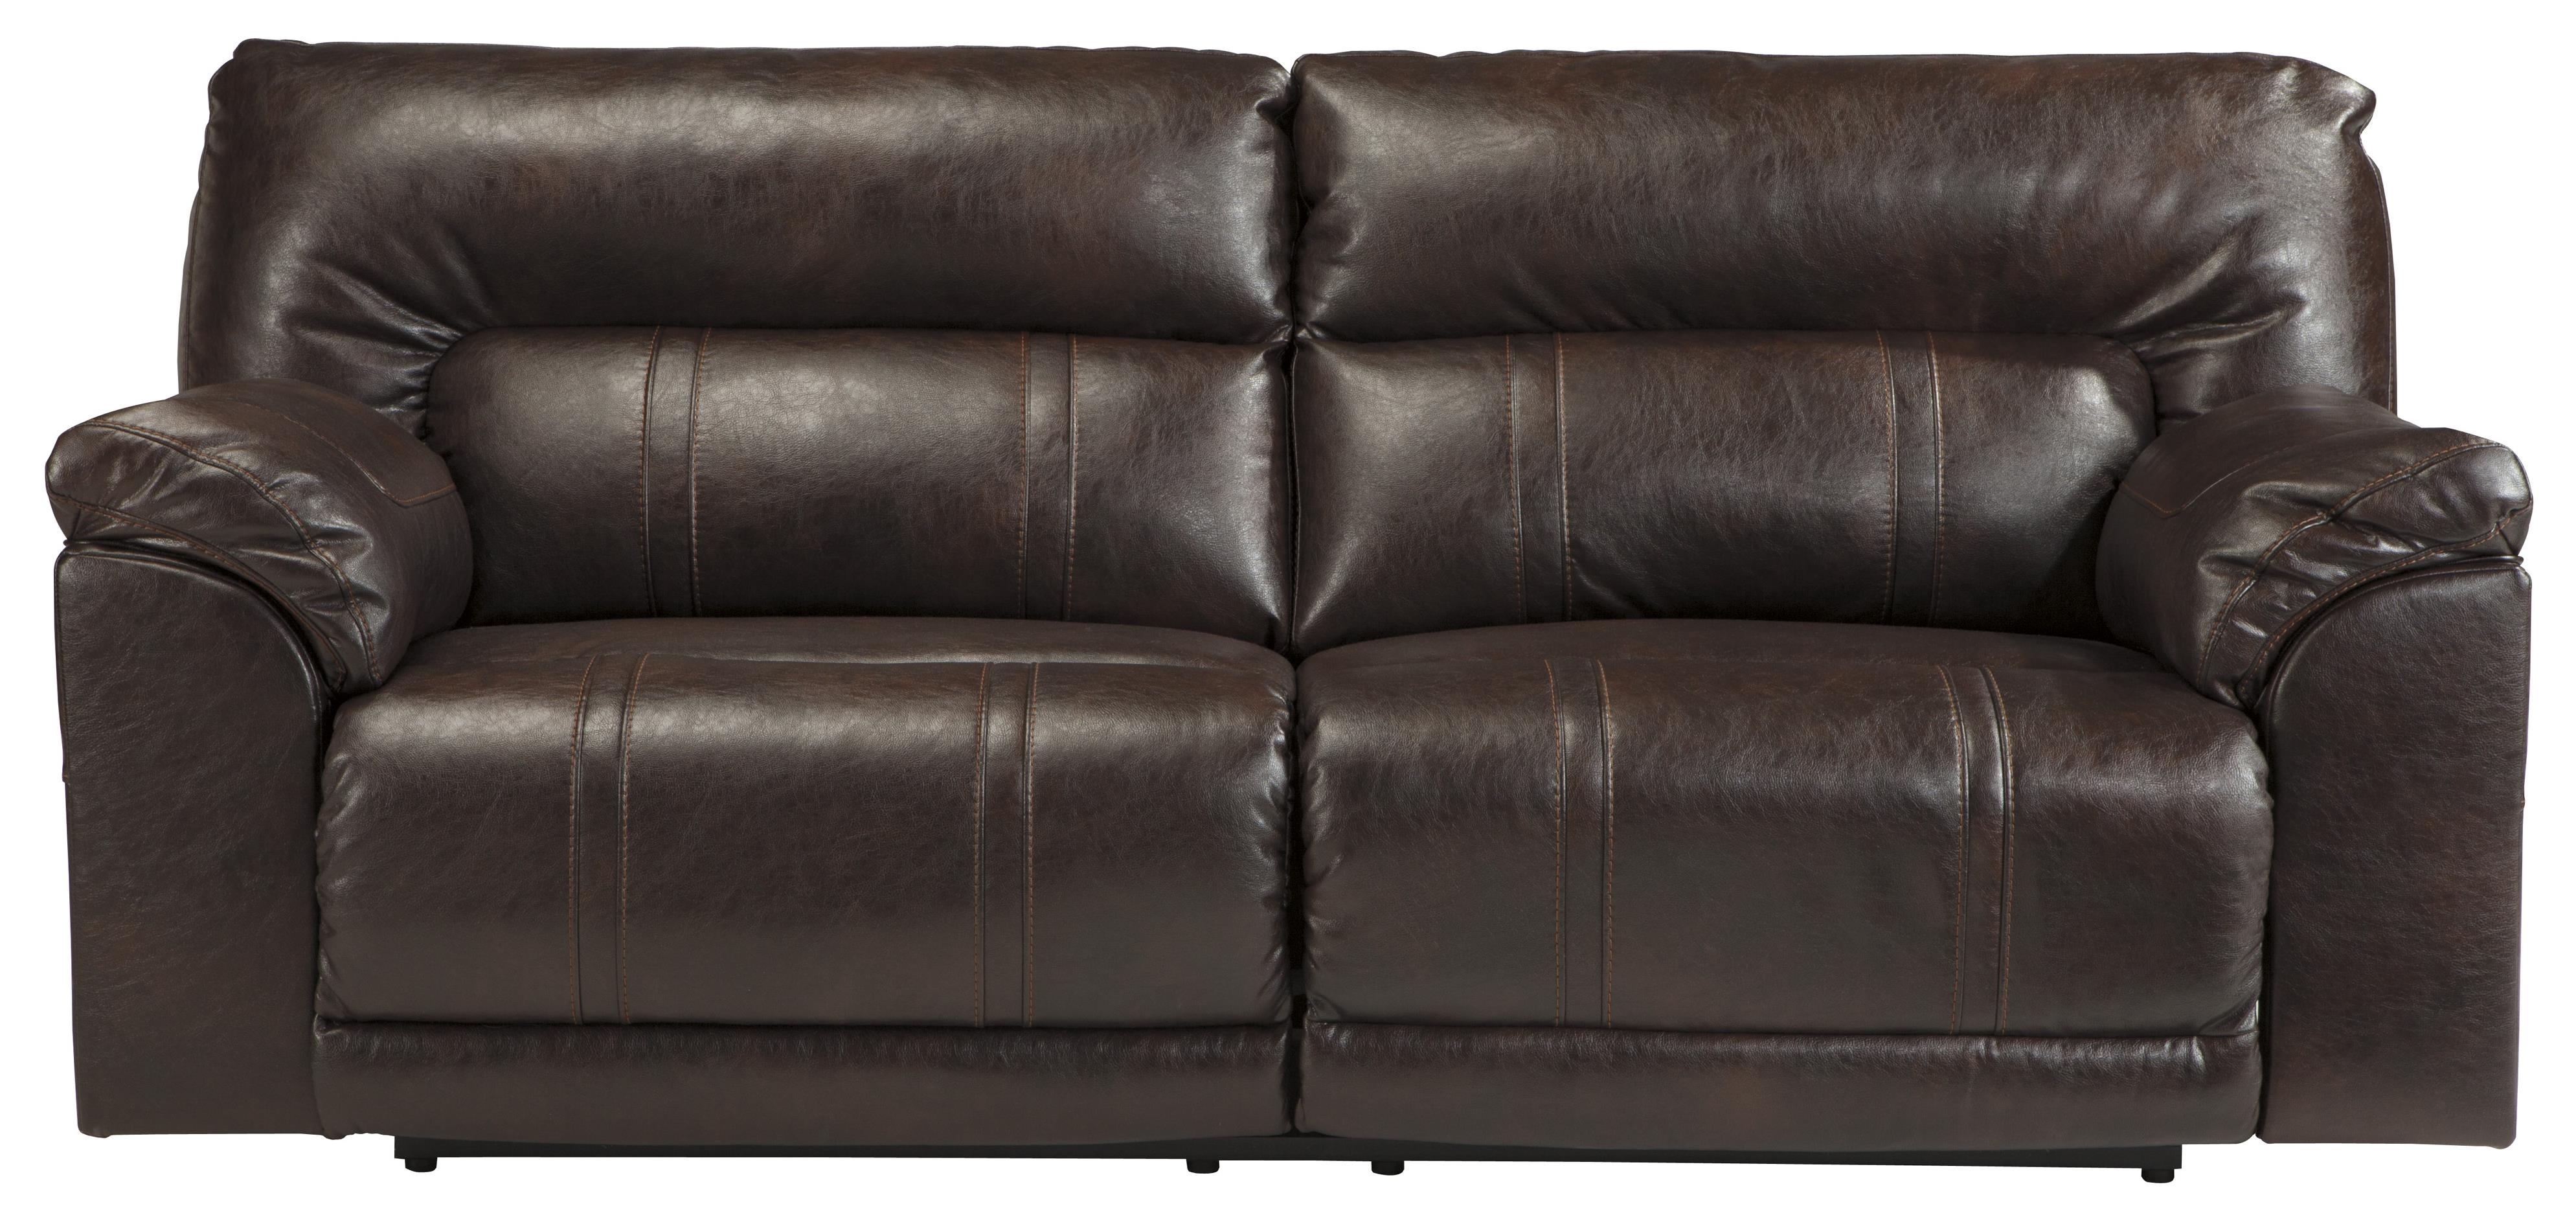 Benchcraft Barrettsville DuraBlend® 2 Seat Reclining Power Sofa - Item Number: 4730147